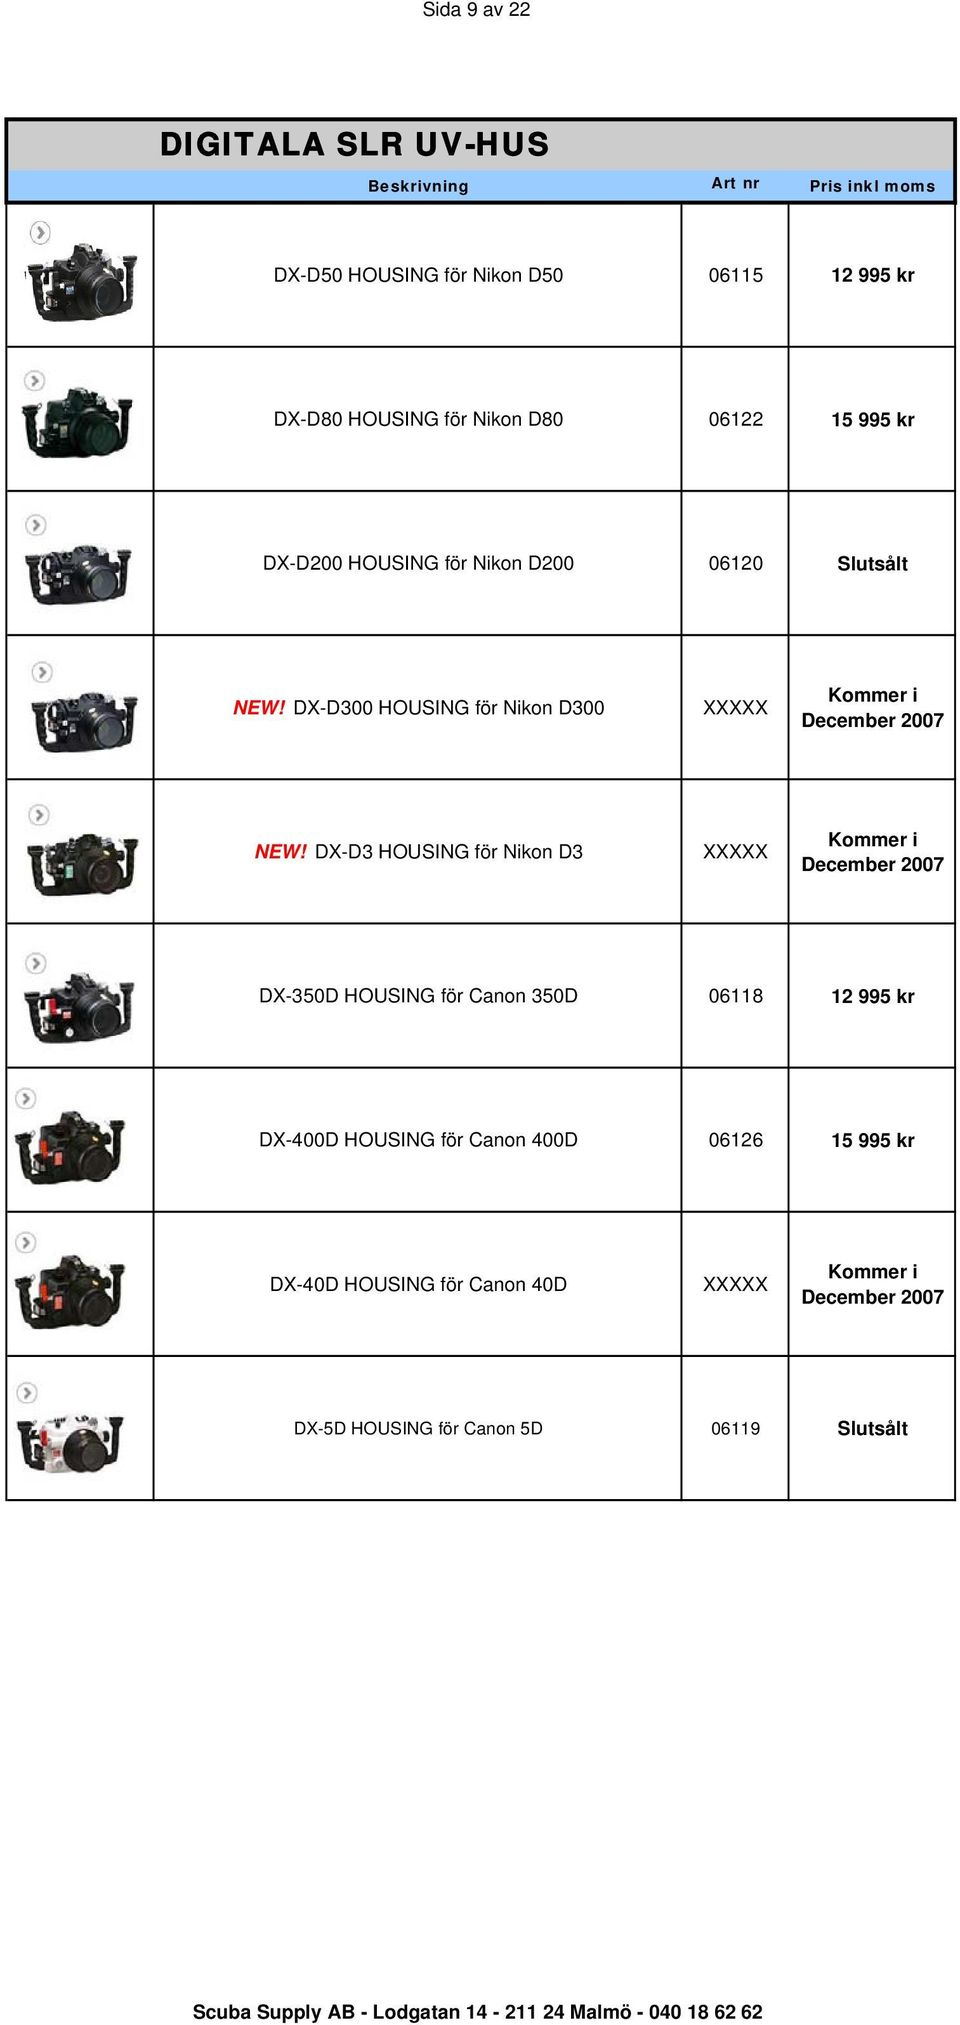 DX-D3 HOUSING för Nikon D3 XXXXX Kommer i December 2007 DX-350D HOUSING för Canon 350D 06118 12 995 kr DX-400D HOUSING